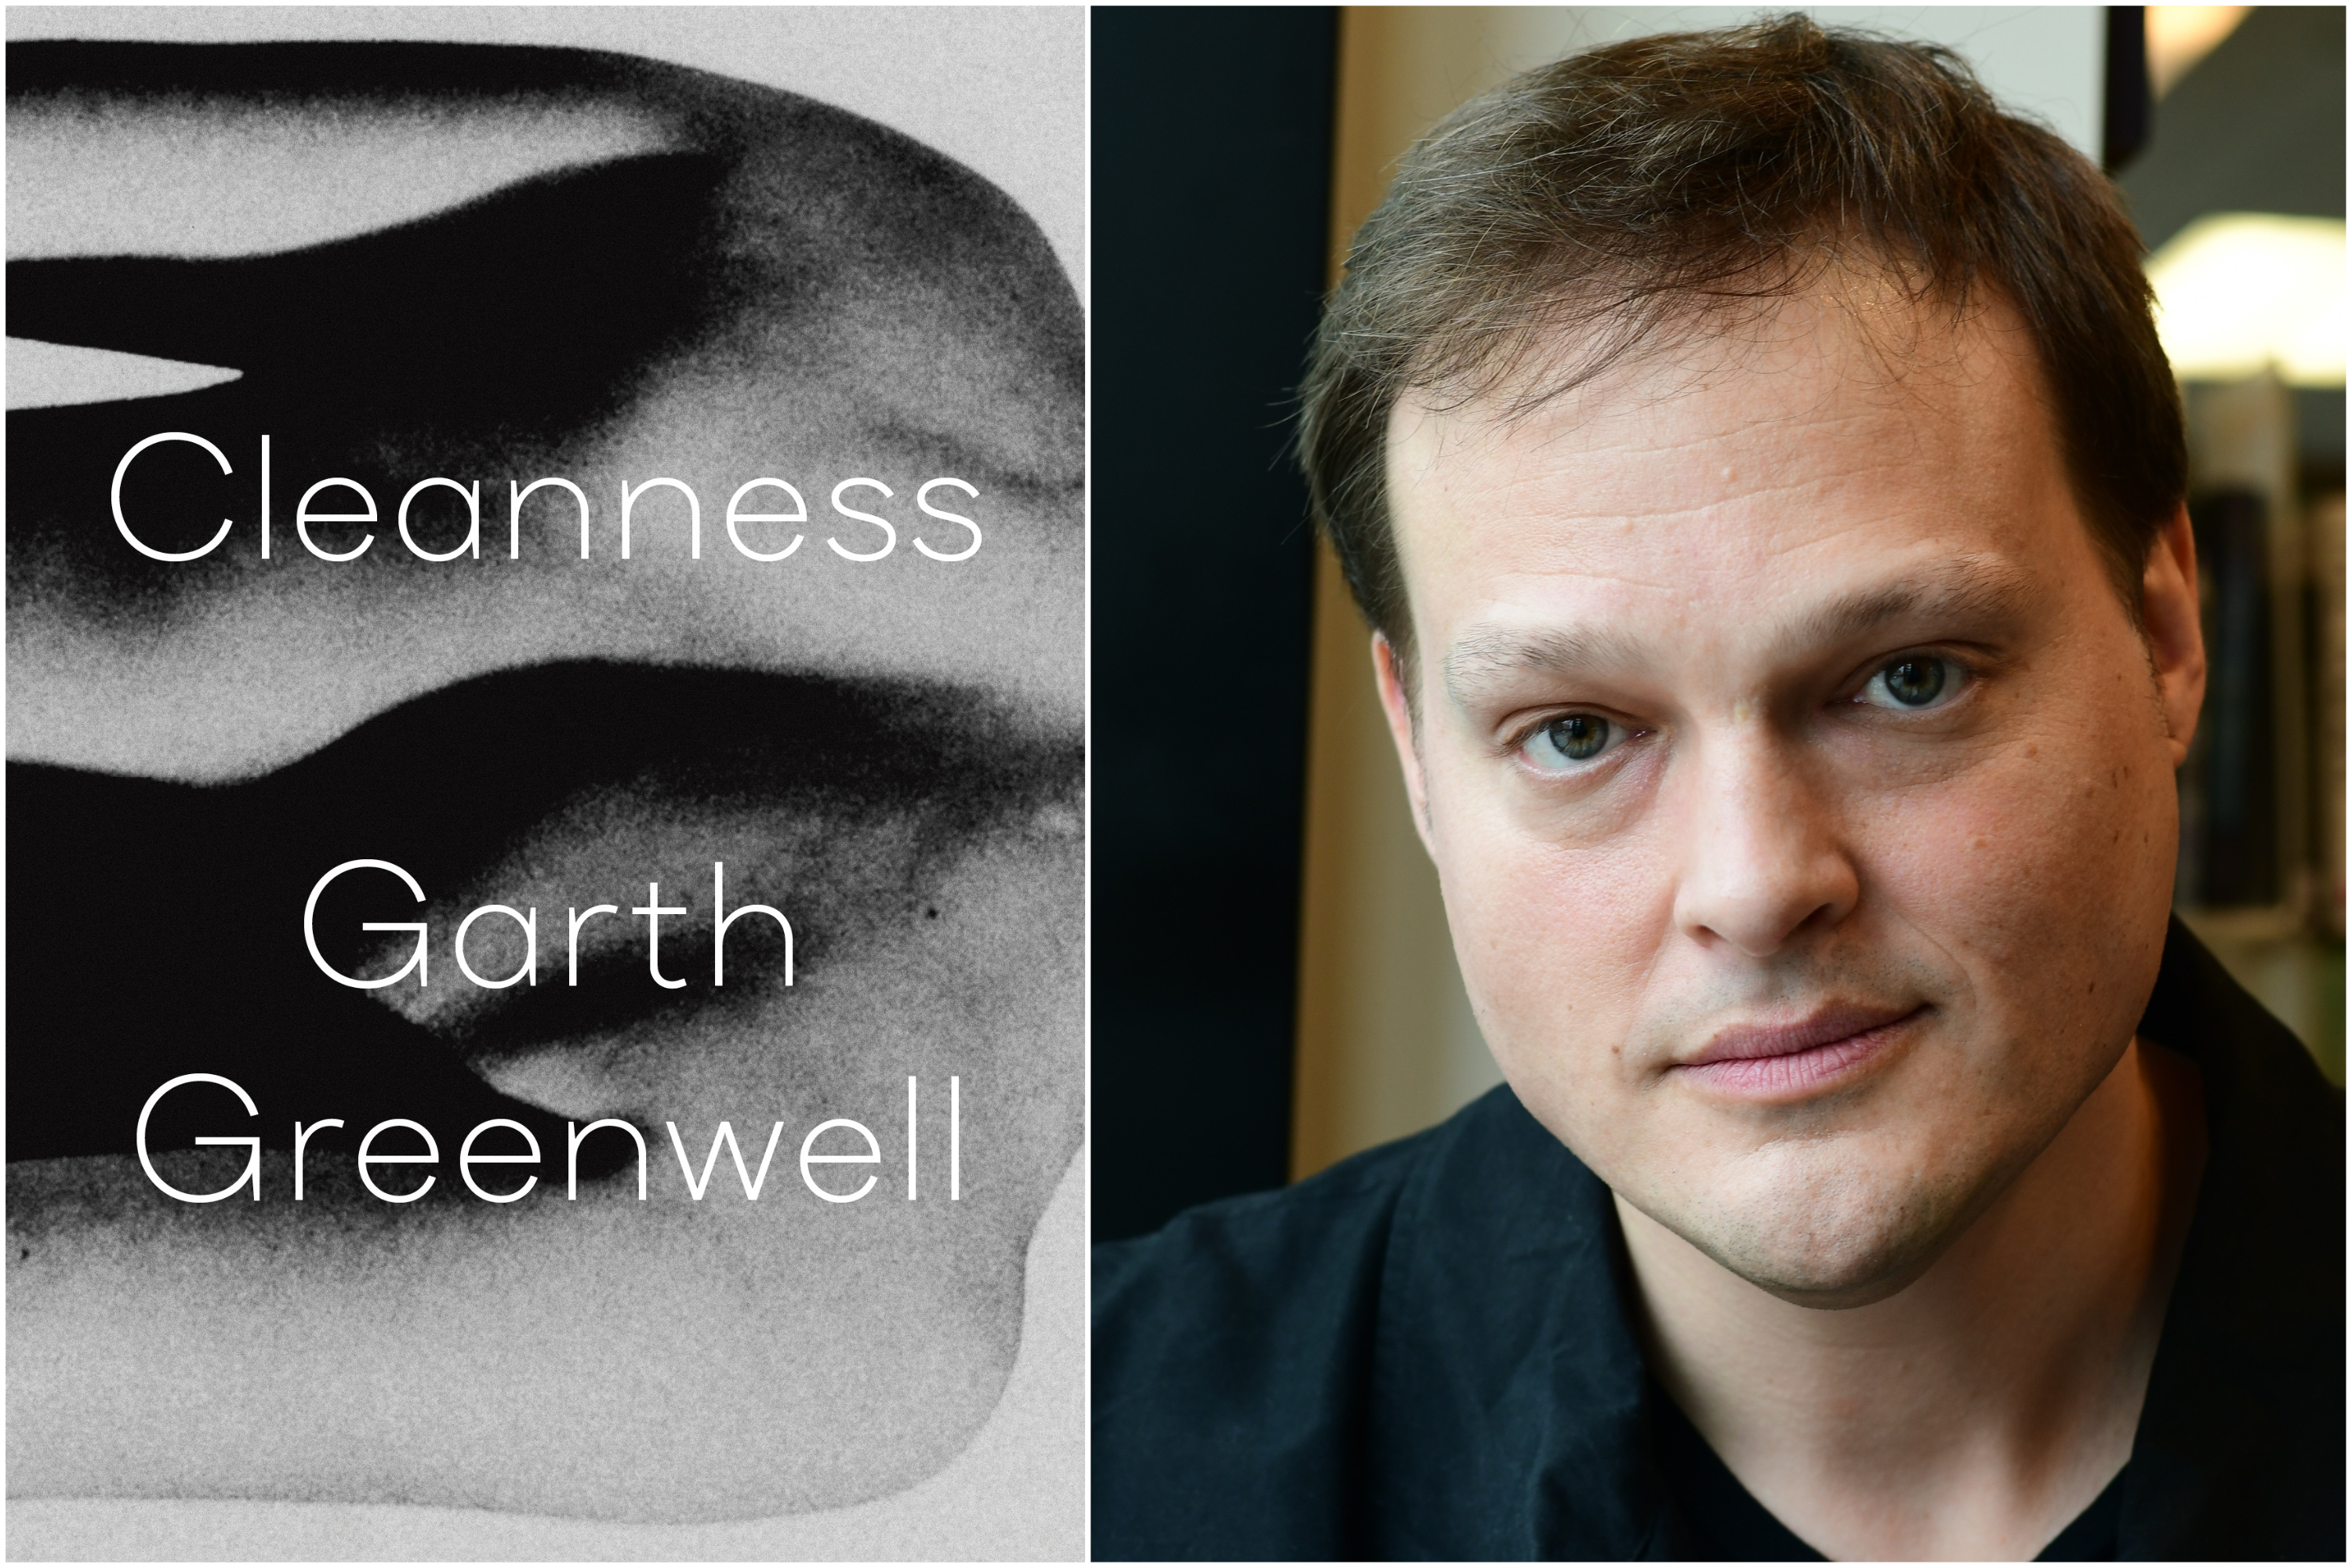 Garth Greenwell event